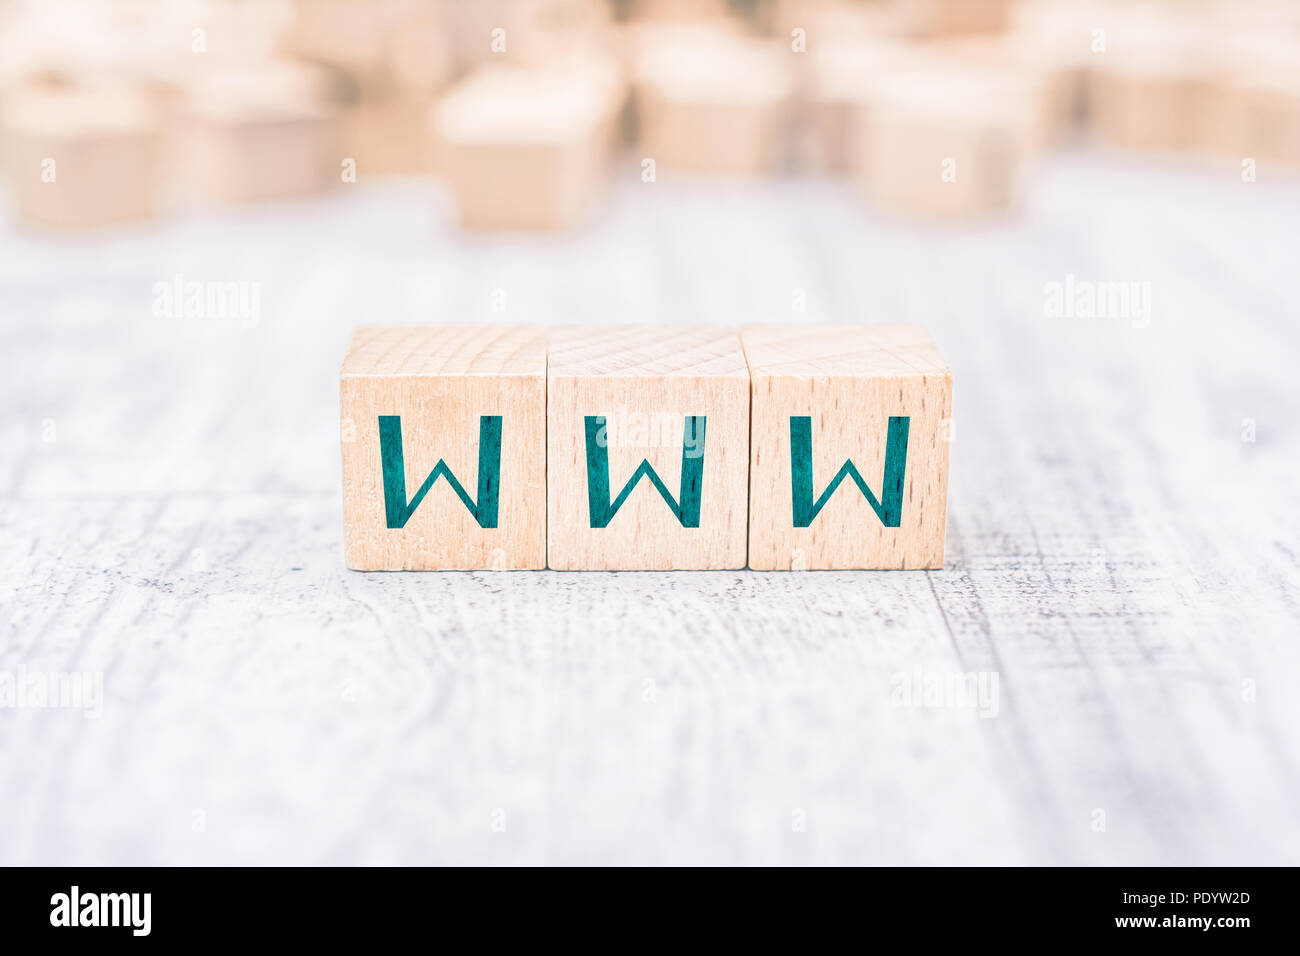 The Word WWW Formed By Wooden Blocks On A White Table - Stock Image